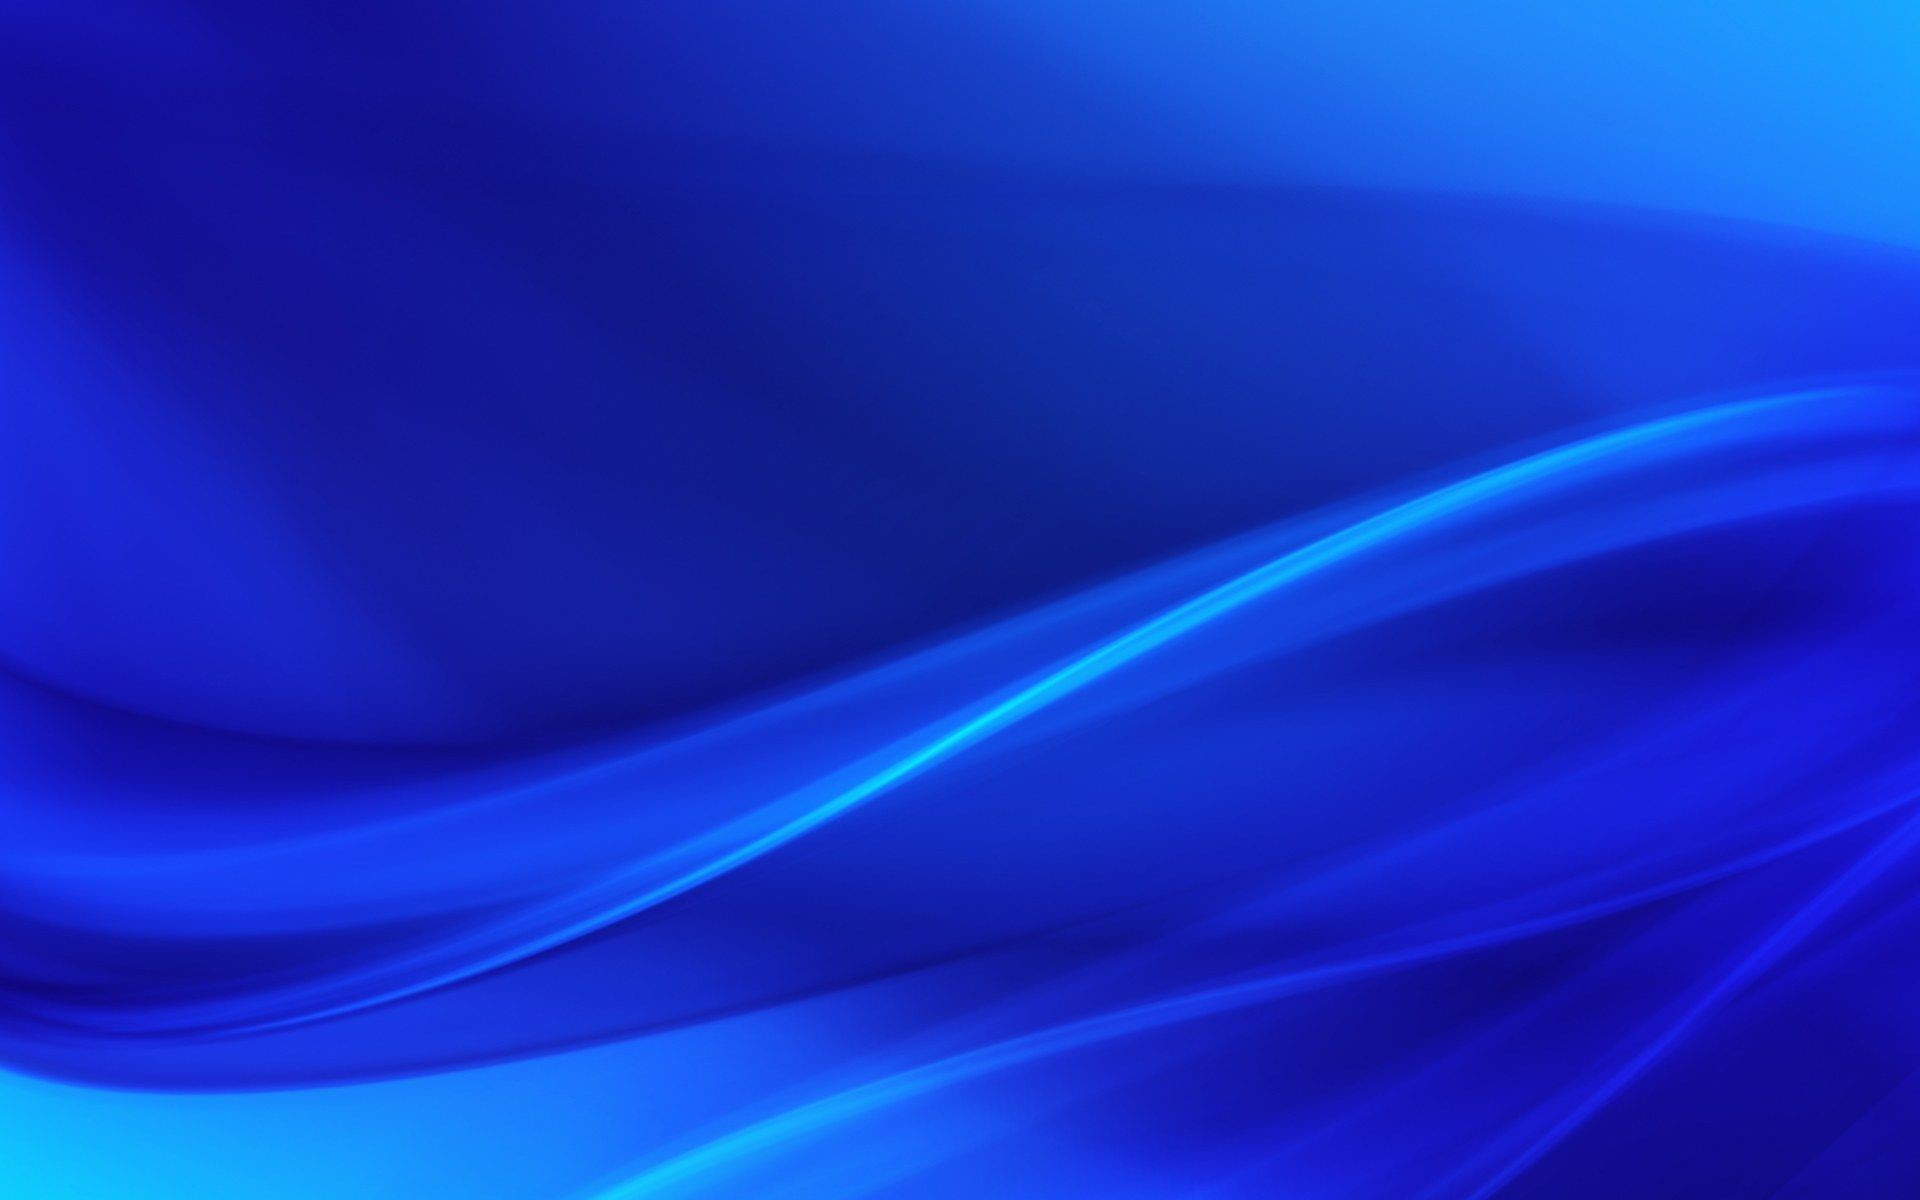 1920x1200 ... New Blue Pics, View #4957531 Blue Wallpapers ...